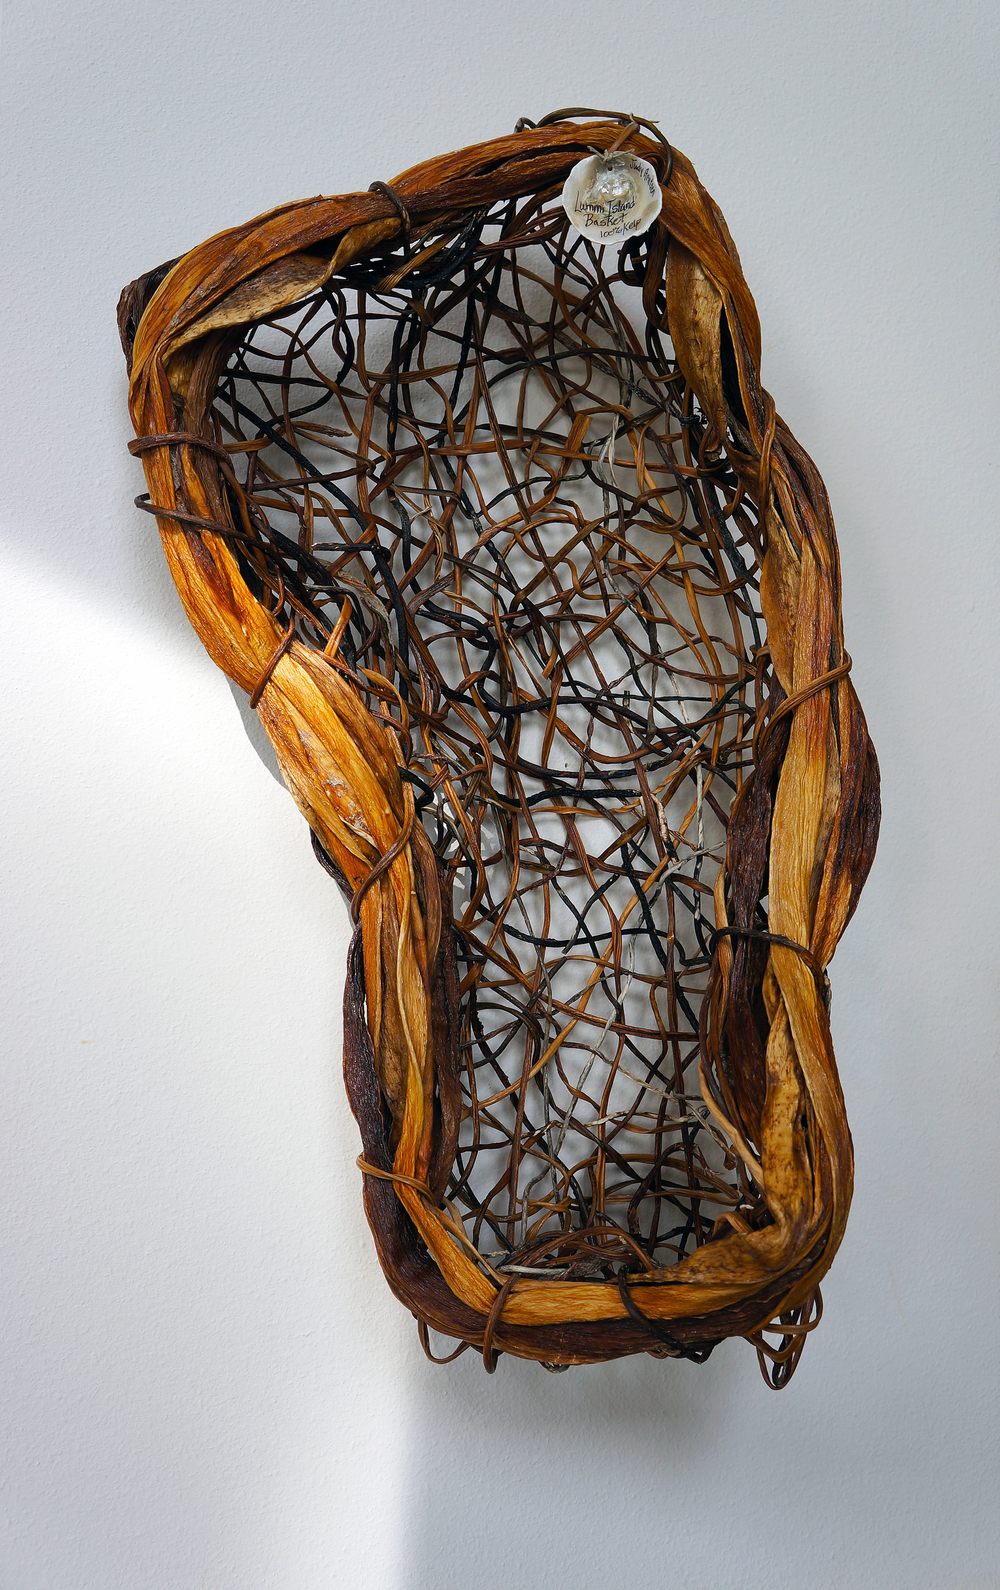 IOA_Lummi_Arnsten_Kelp_Basket-edit.jpg